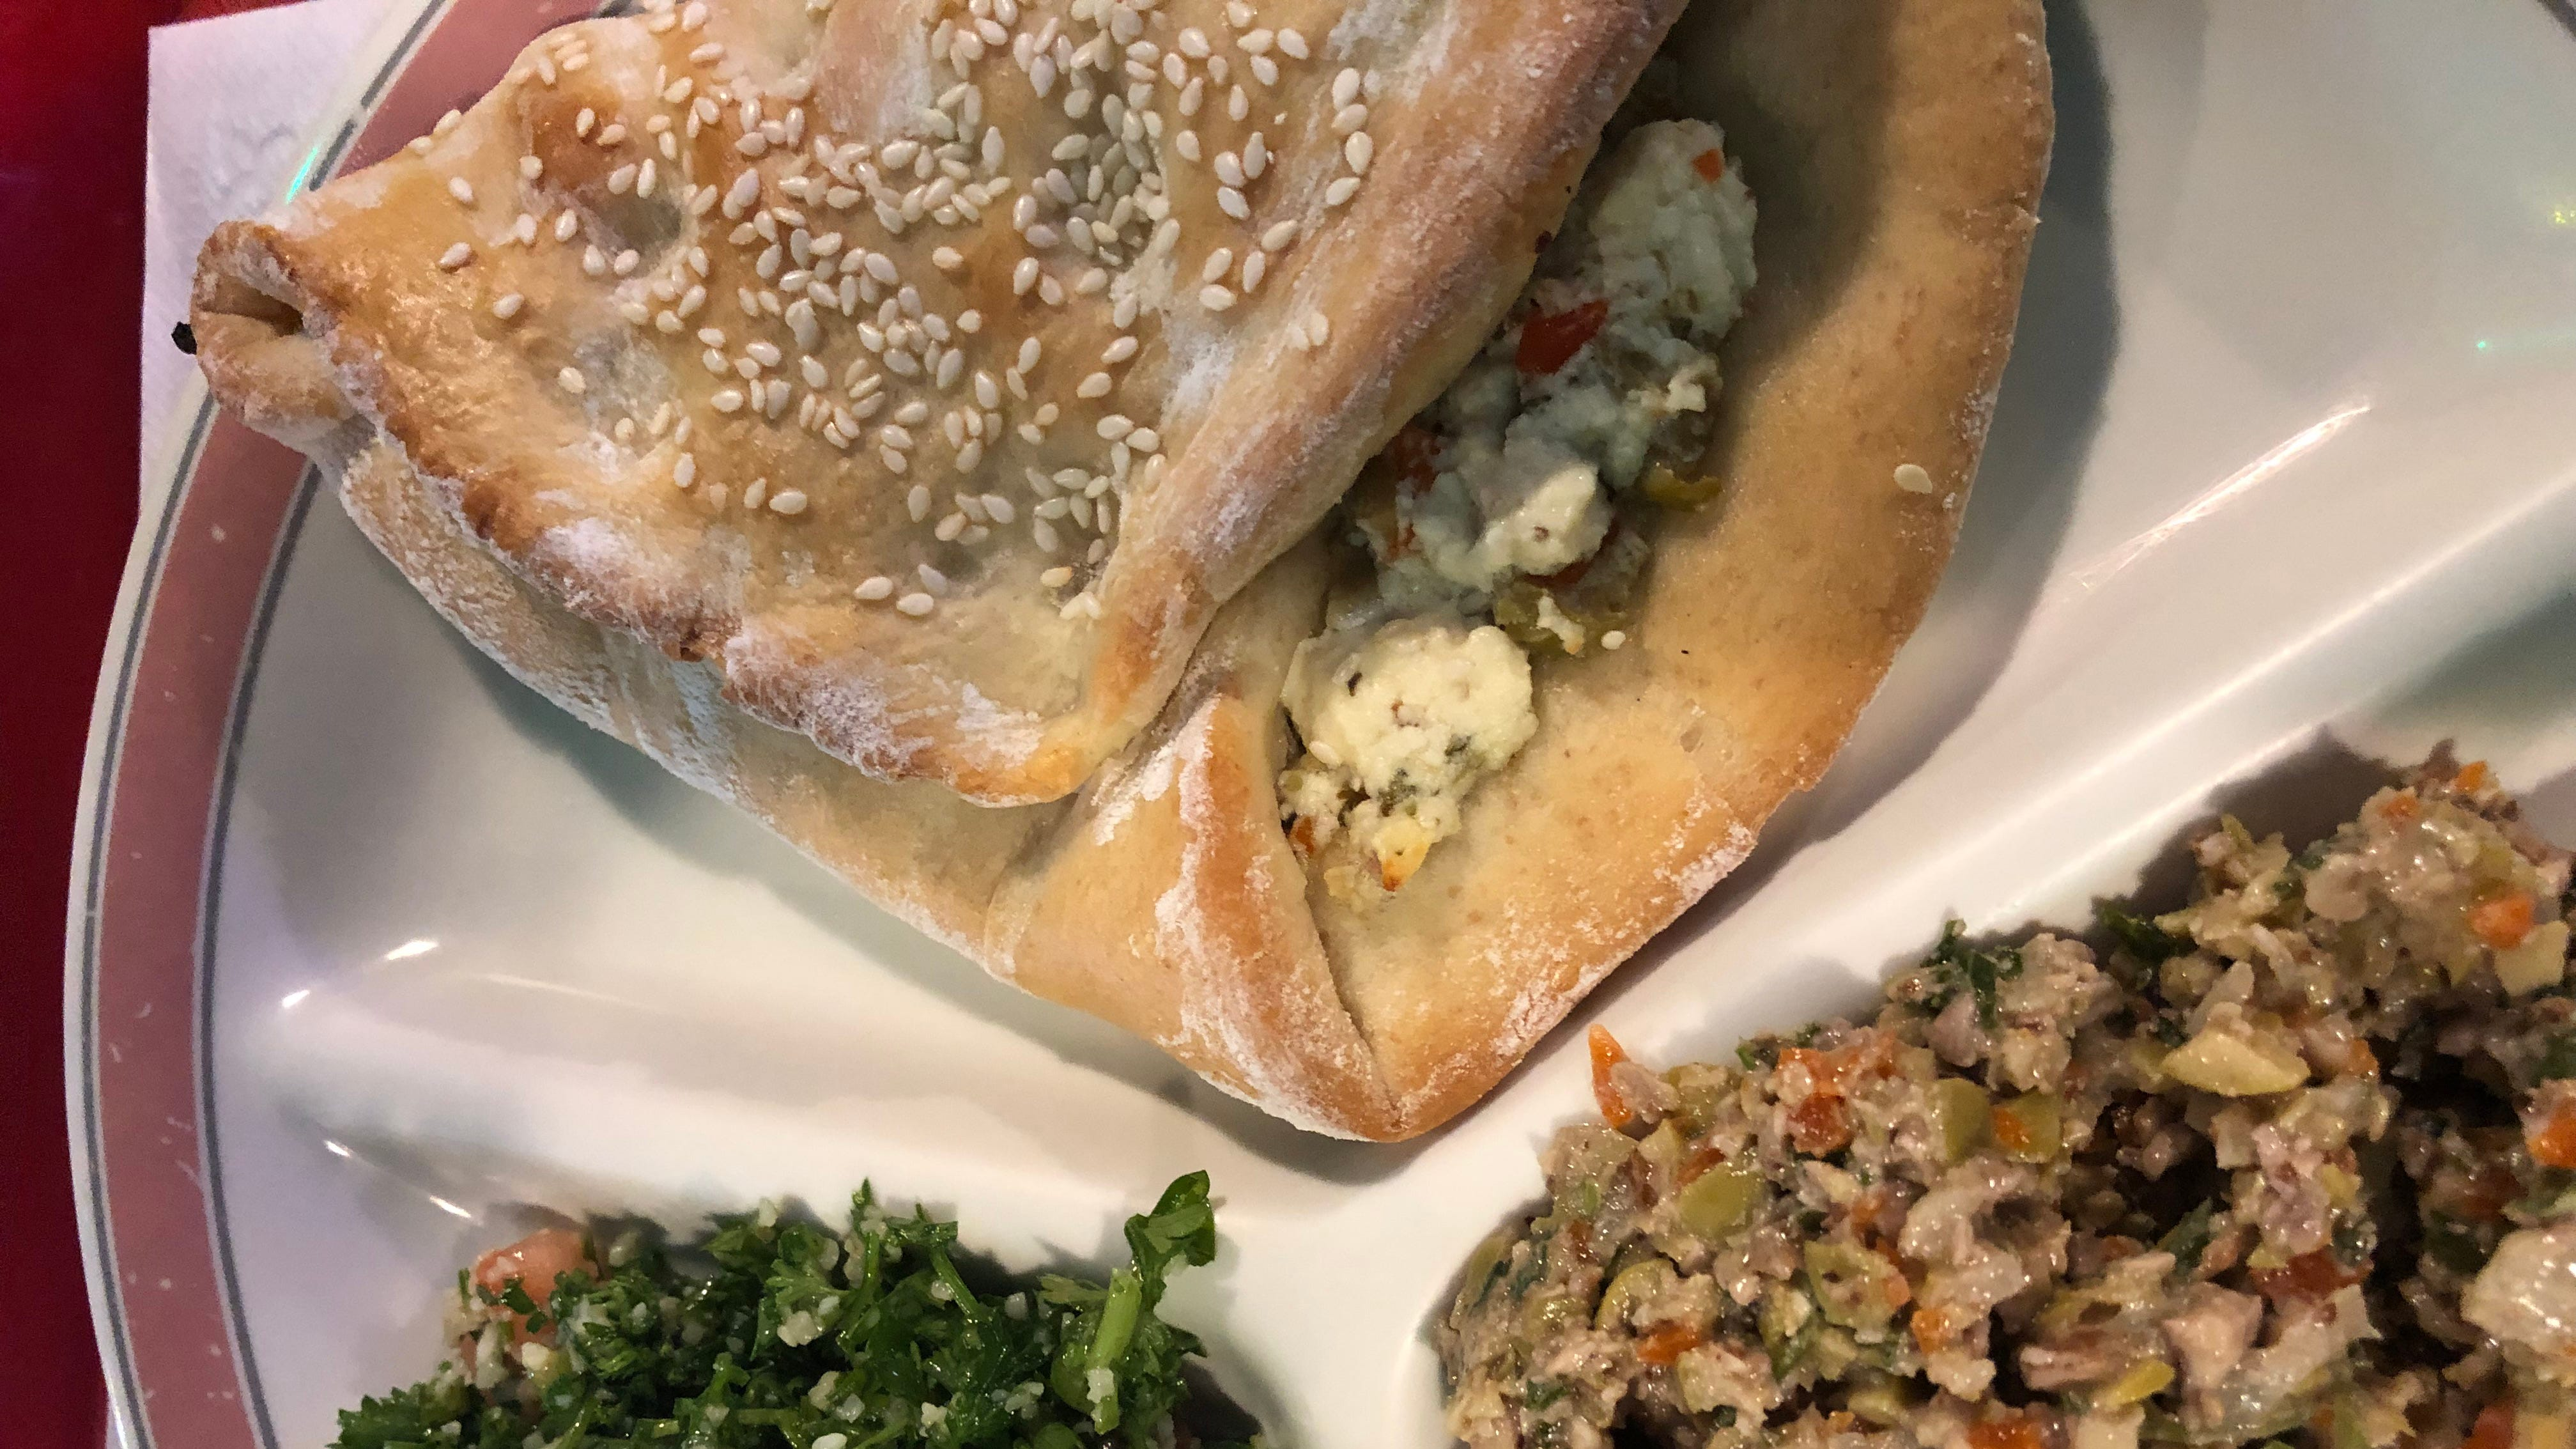 Feta, Olive and Oregano fatayer with tabbouleh and green olive tapenade.